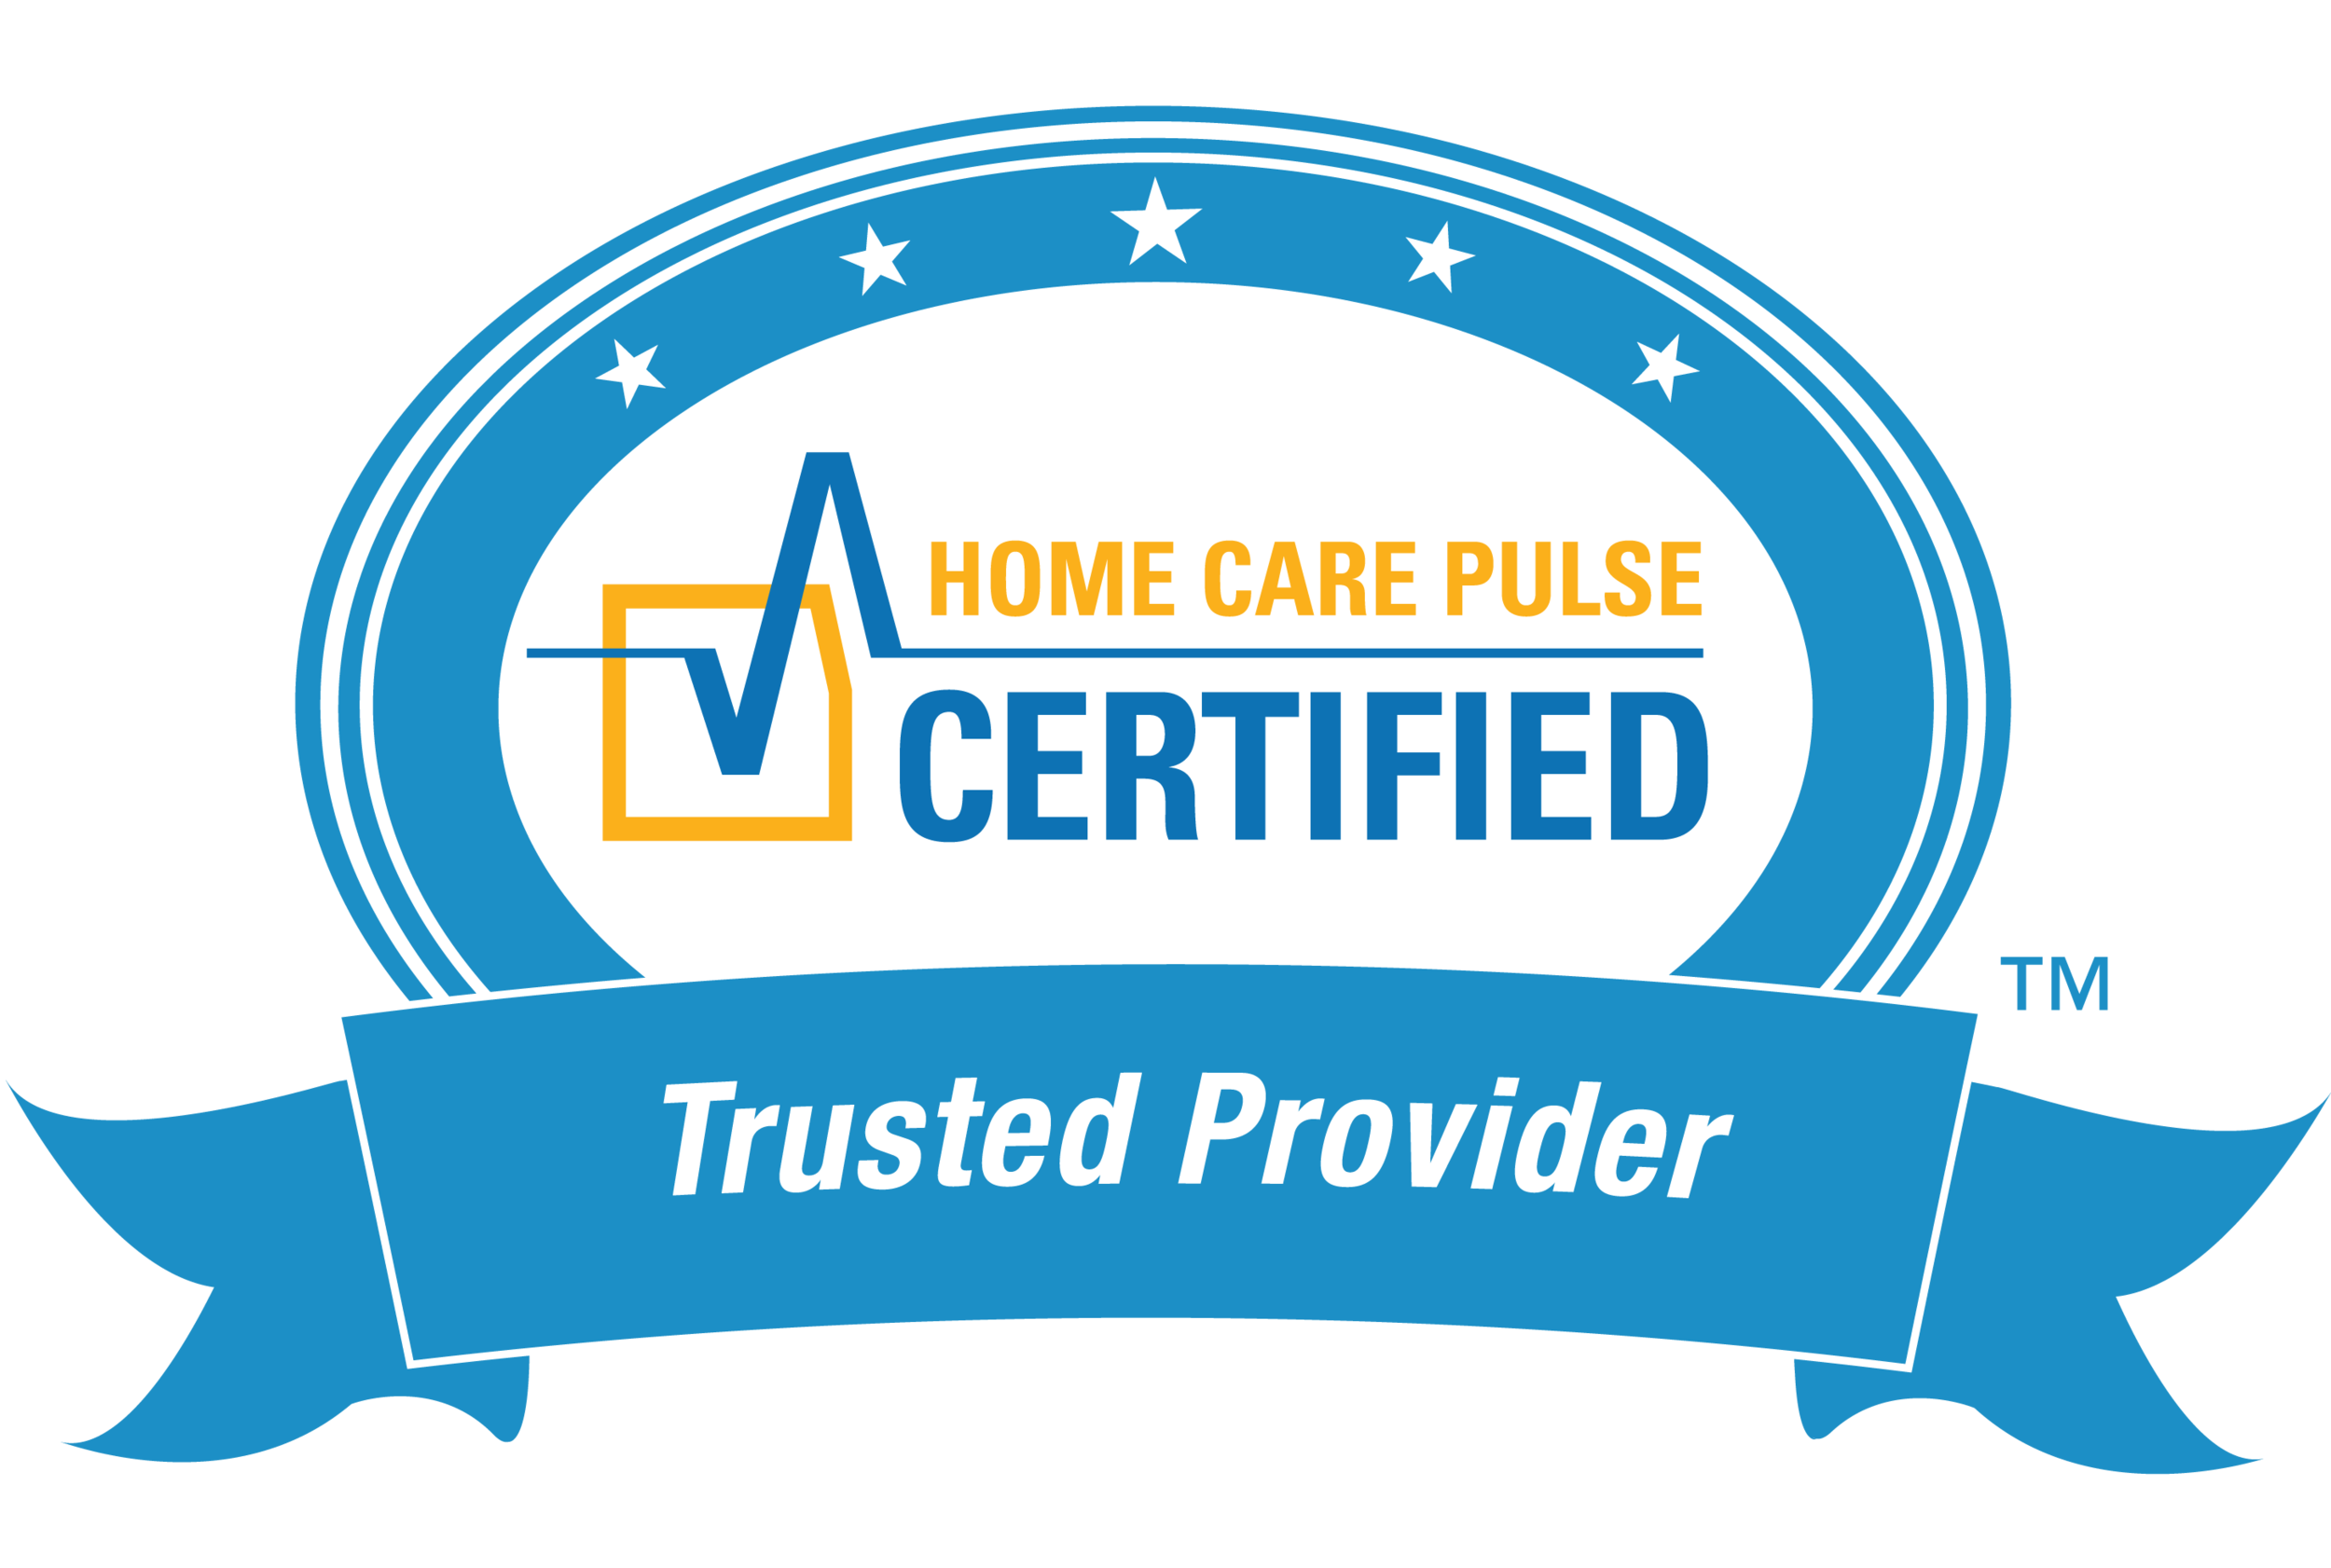 2015_Trusted-Provider (High Resolution)_Trusted Provider_700x700.png